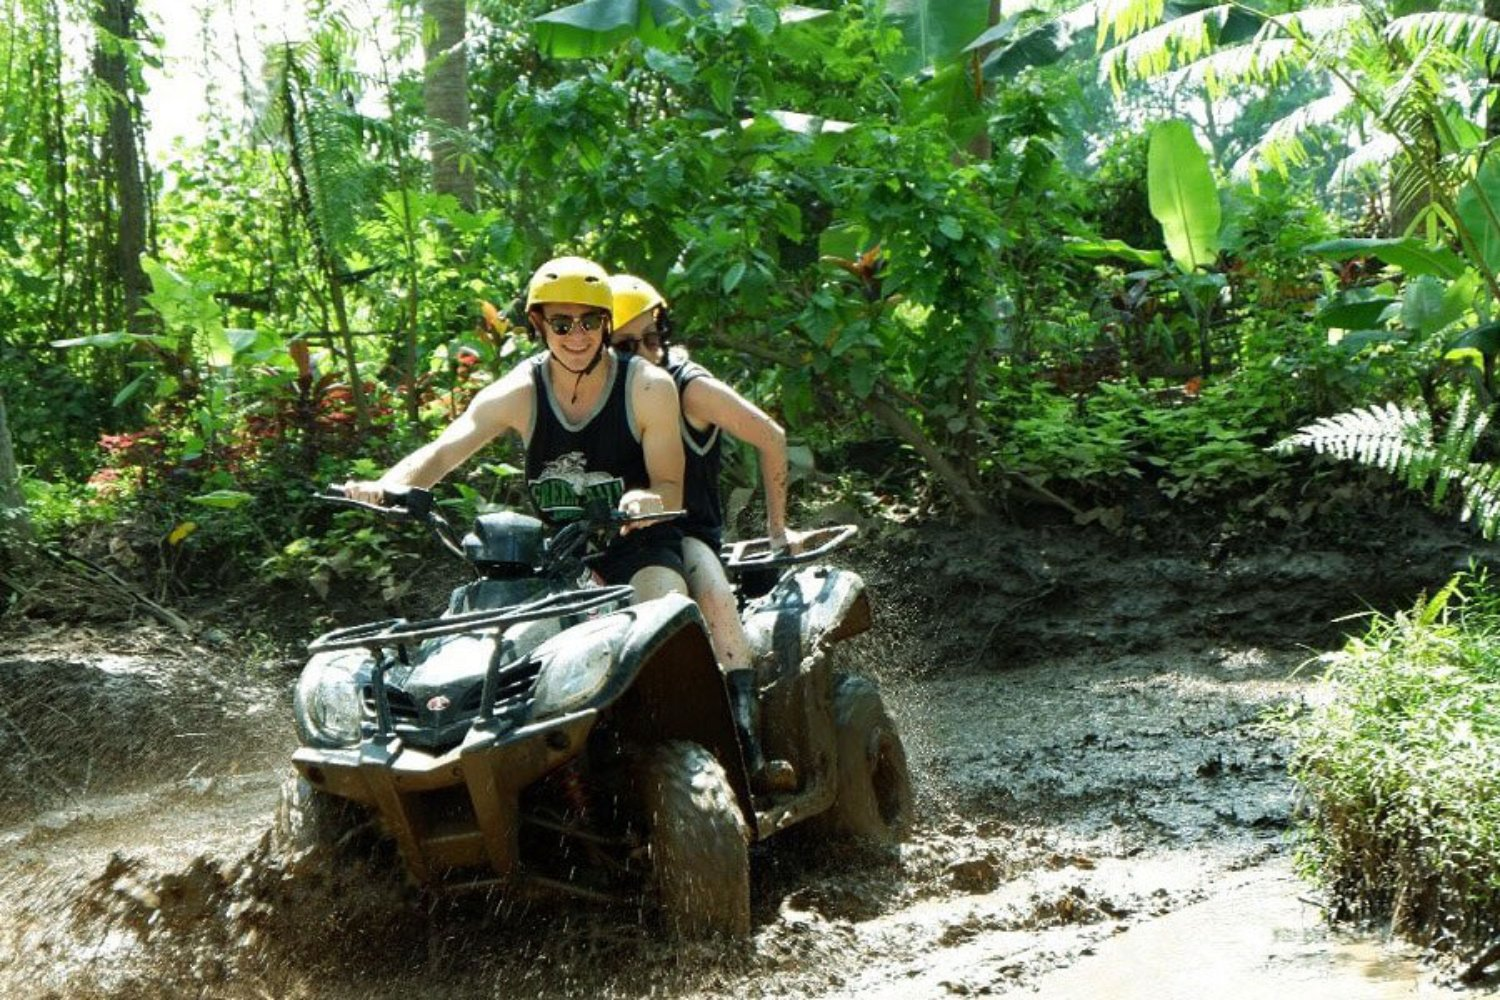 Bali Atv Quad Bike Adventure, Get Through Forest and Temple